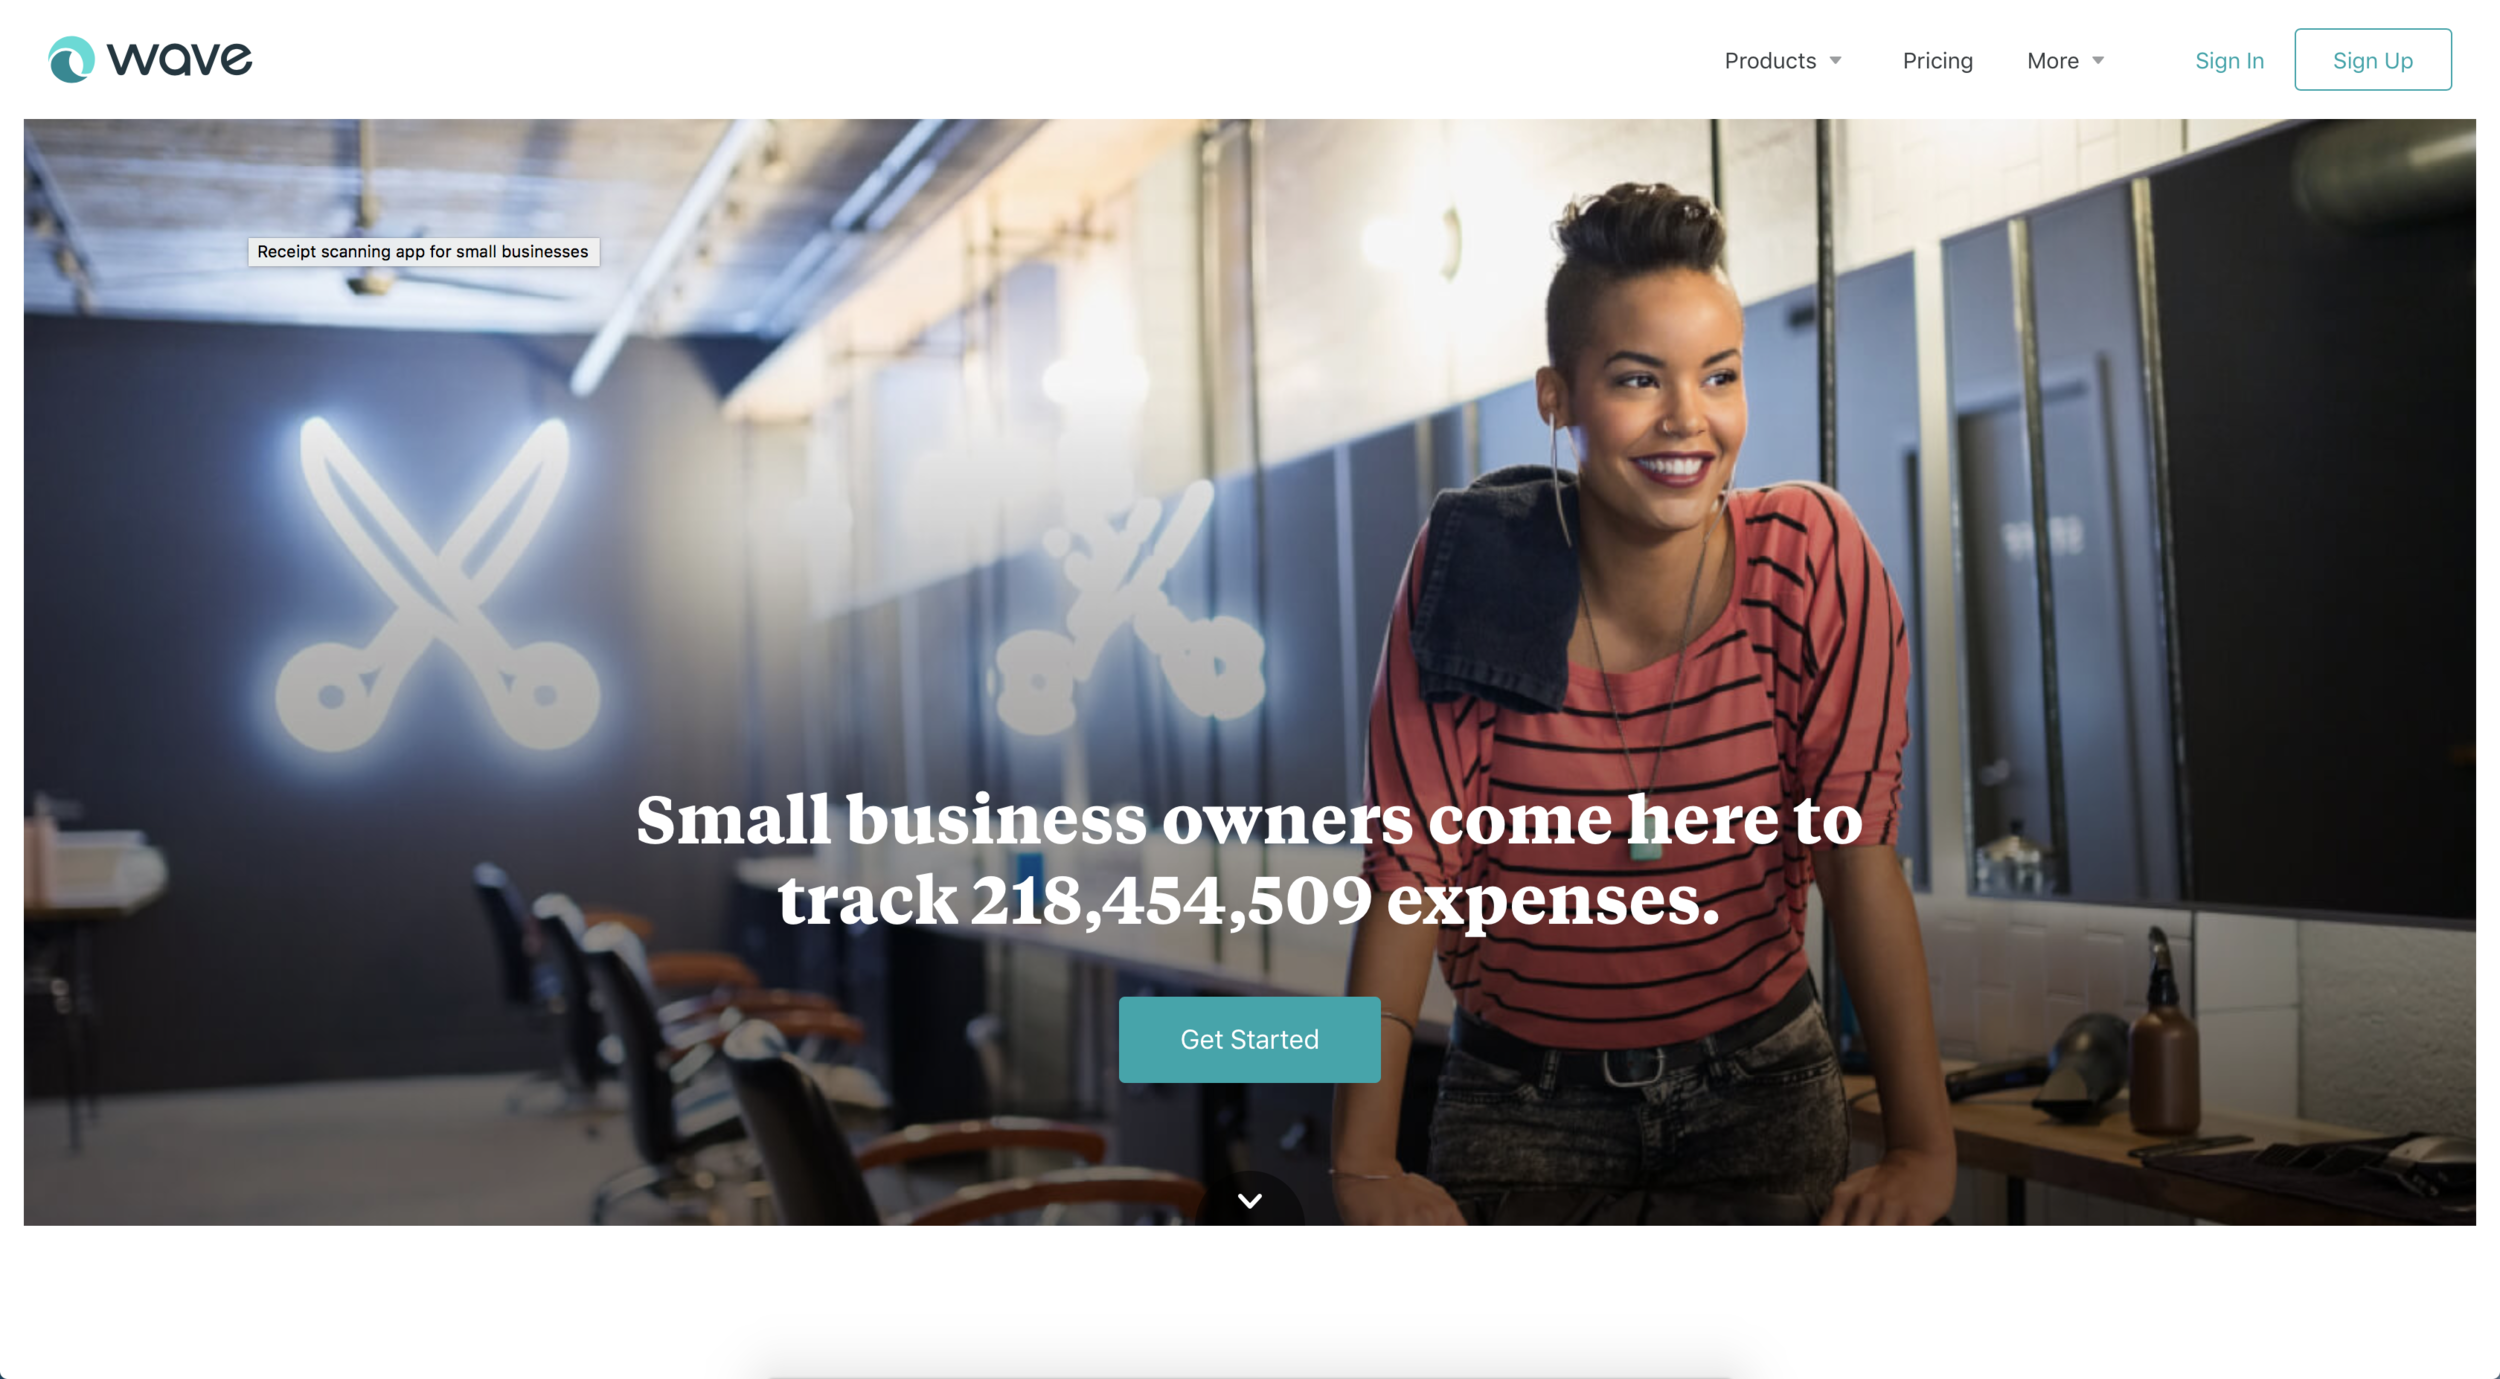 Hello-Mammoth-Blog-Marketing-Small-Business-Wave-Accounting-Tools-Tips